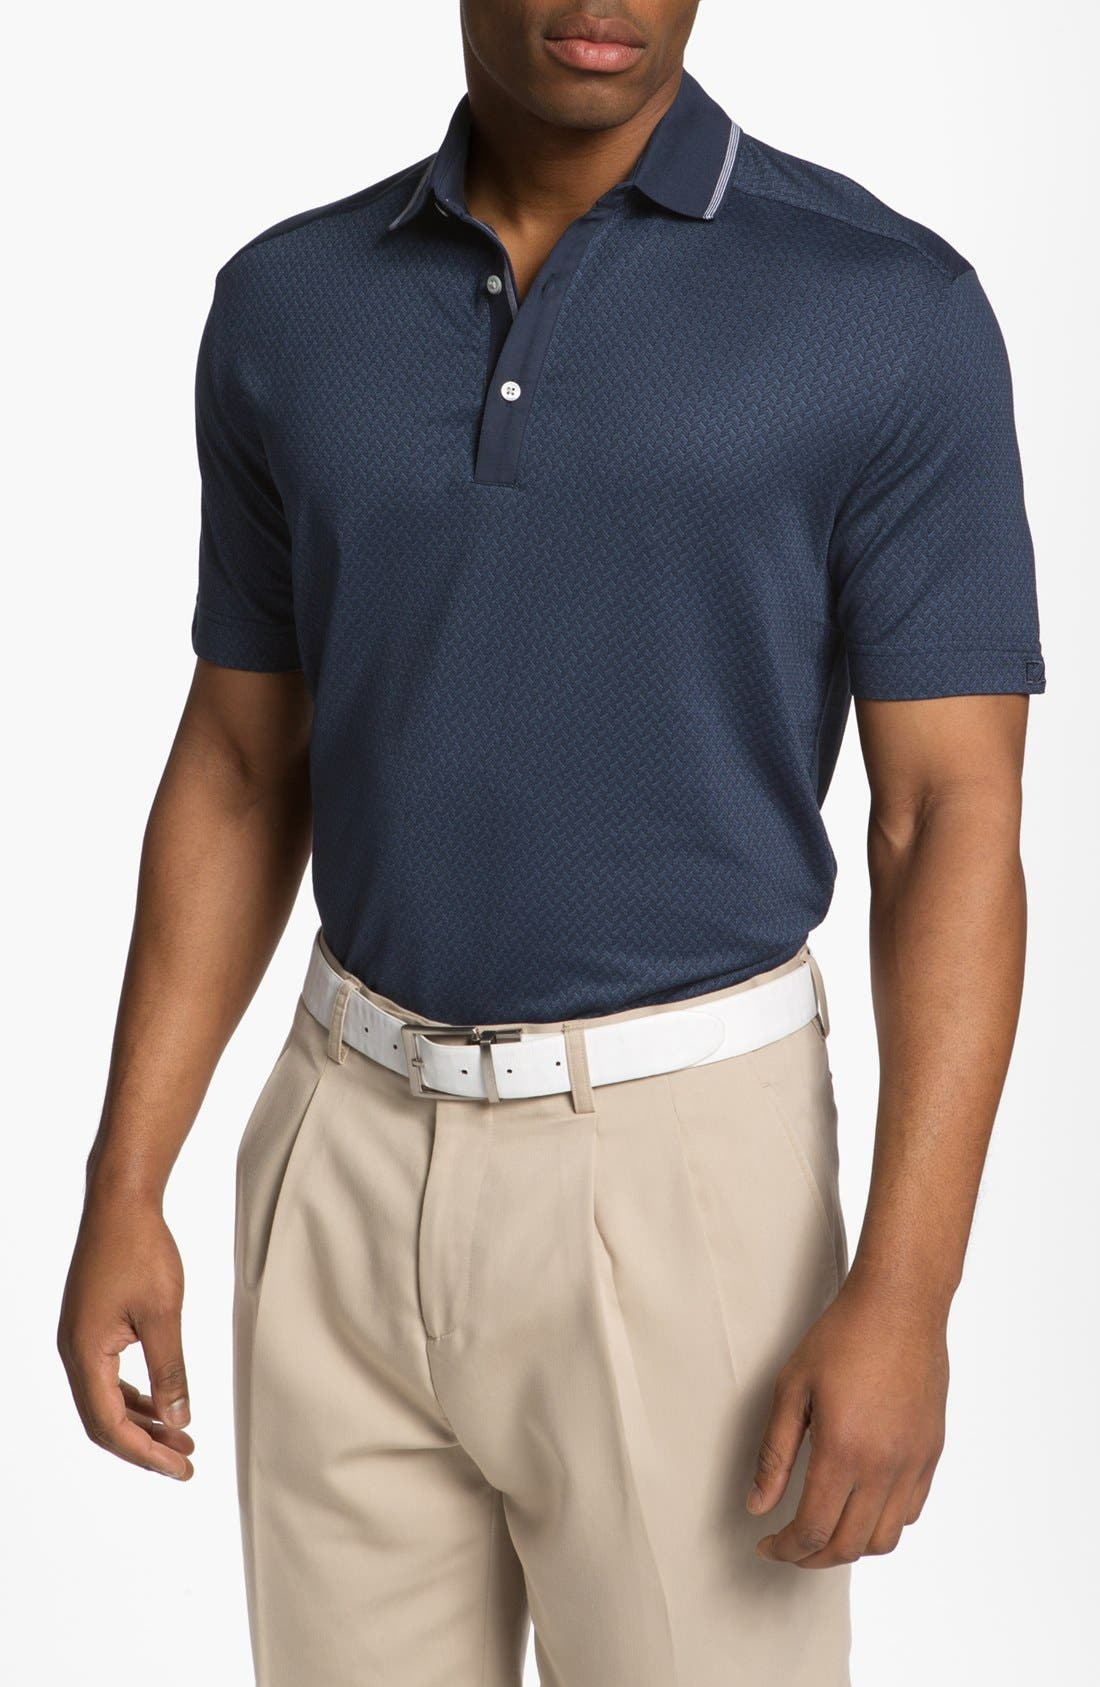 Alternate Image 1 Selected - Cutter & Buck 'Sumner' DryTec Polo (Big & Tall)